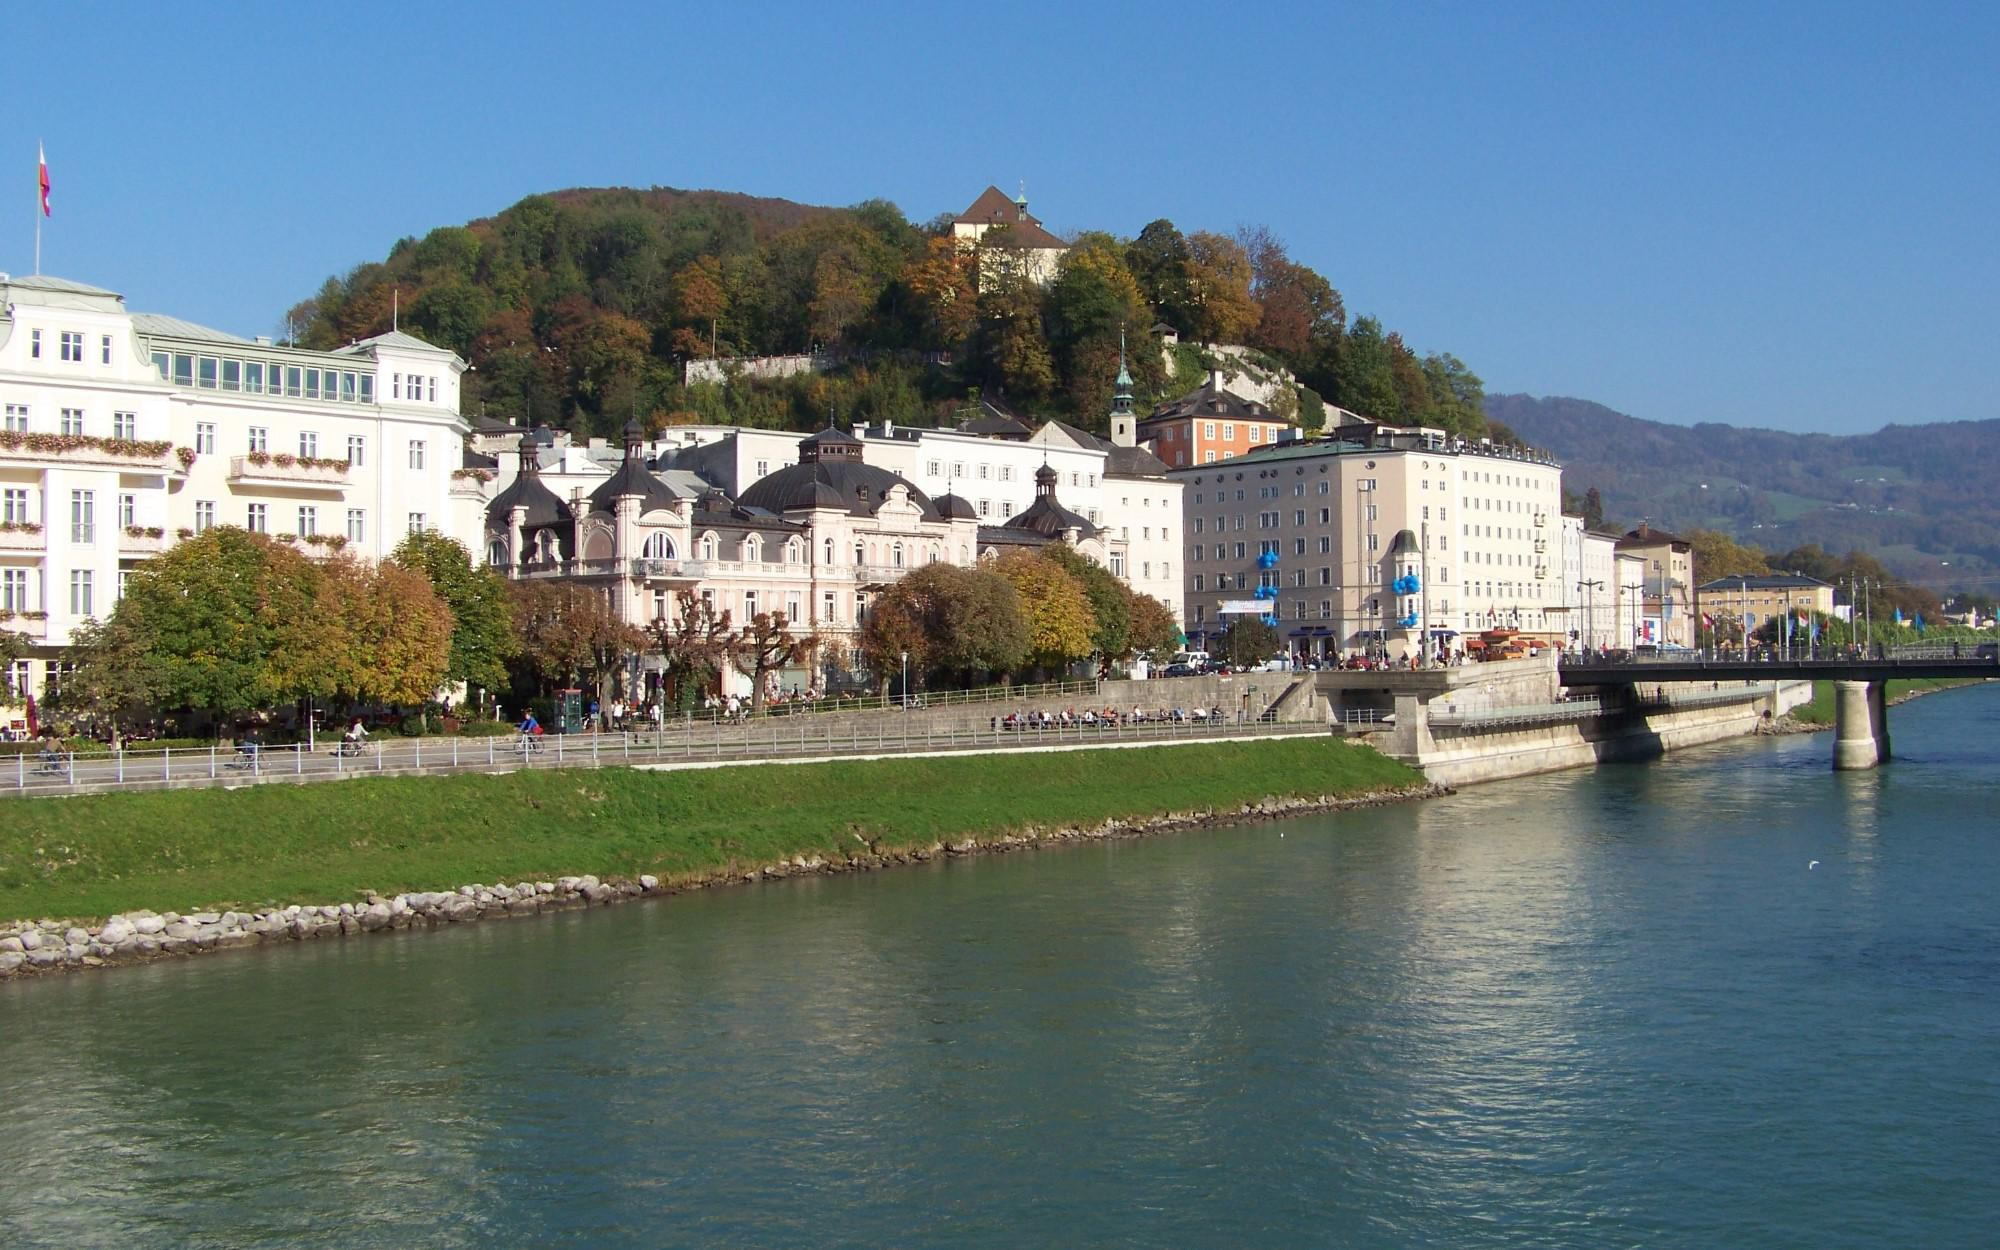 Hotel-project in panoramic city location in Salzburg 1 - Salzburgland - Austria